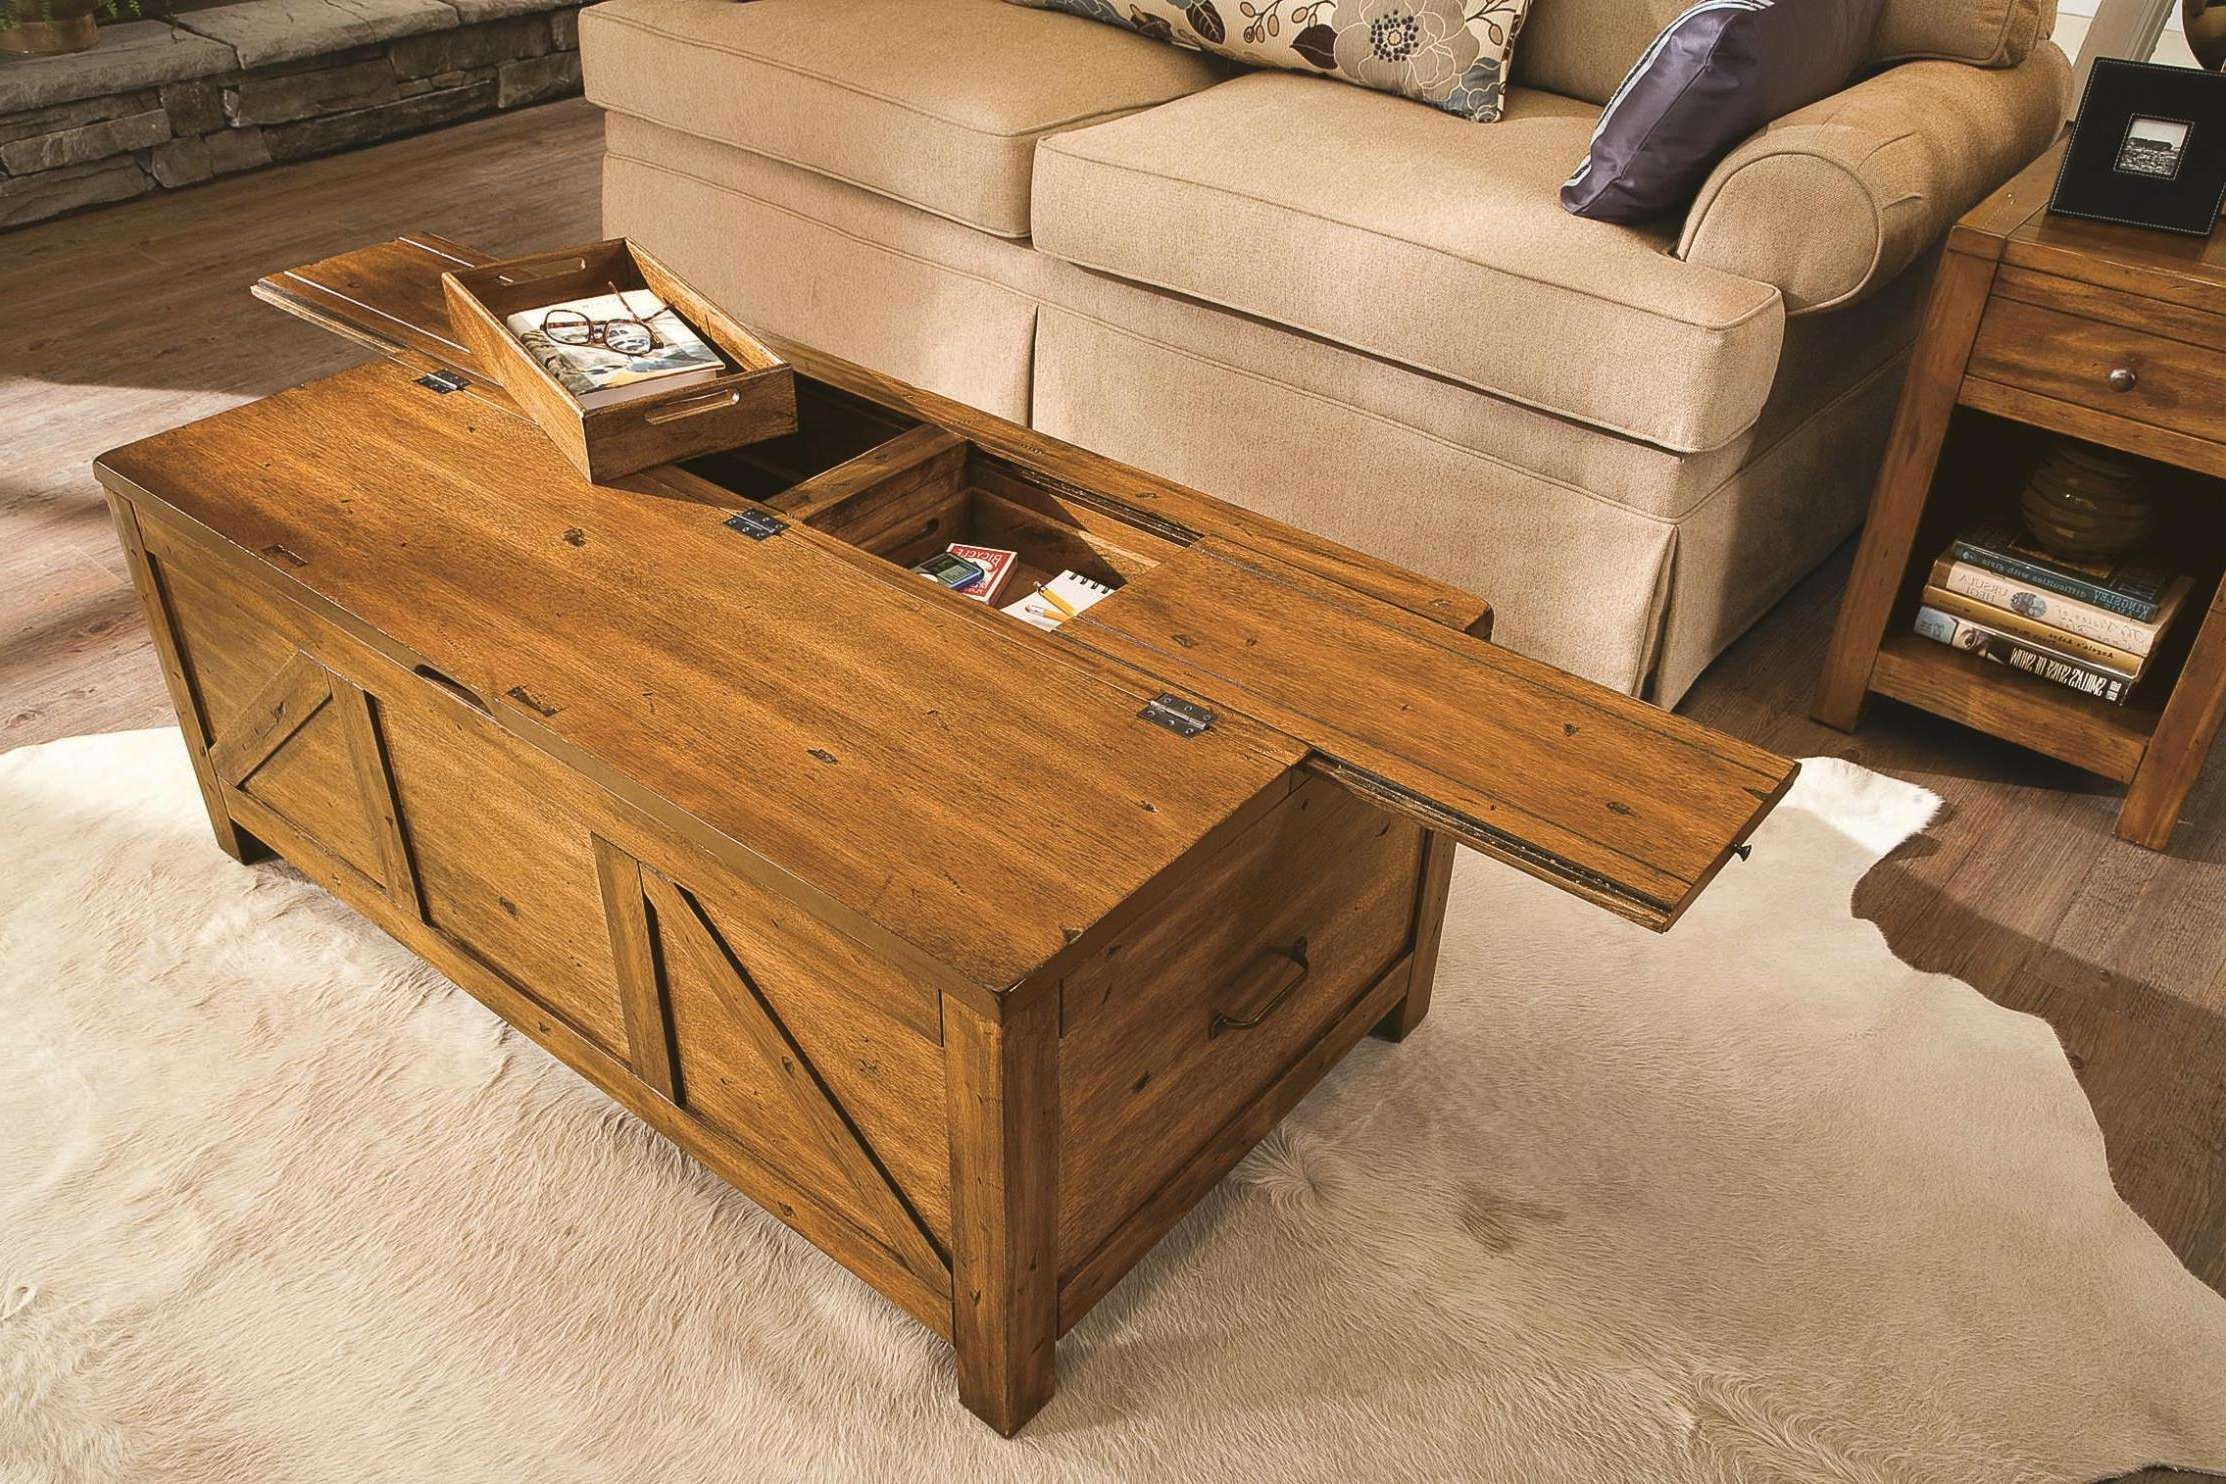 Newest Large Coffee Table With Storage Regarding Coffee Tables : Square Coffee Table Large With Storage Oversized (View 15 of 20)